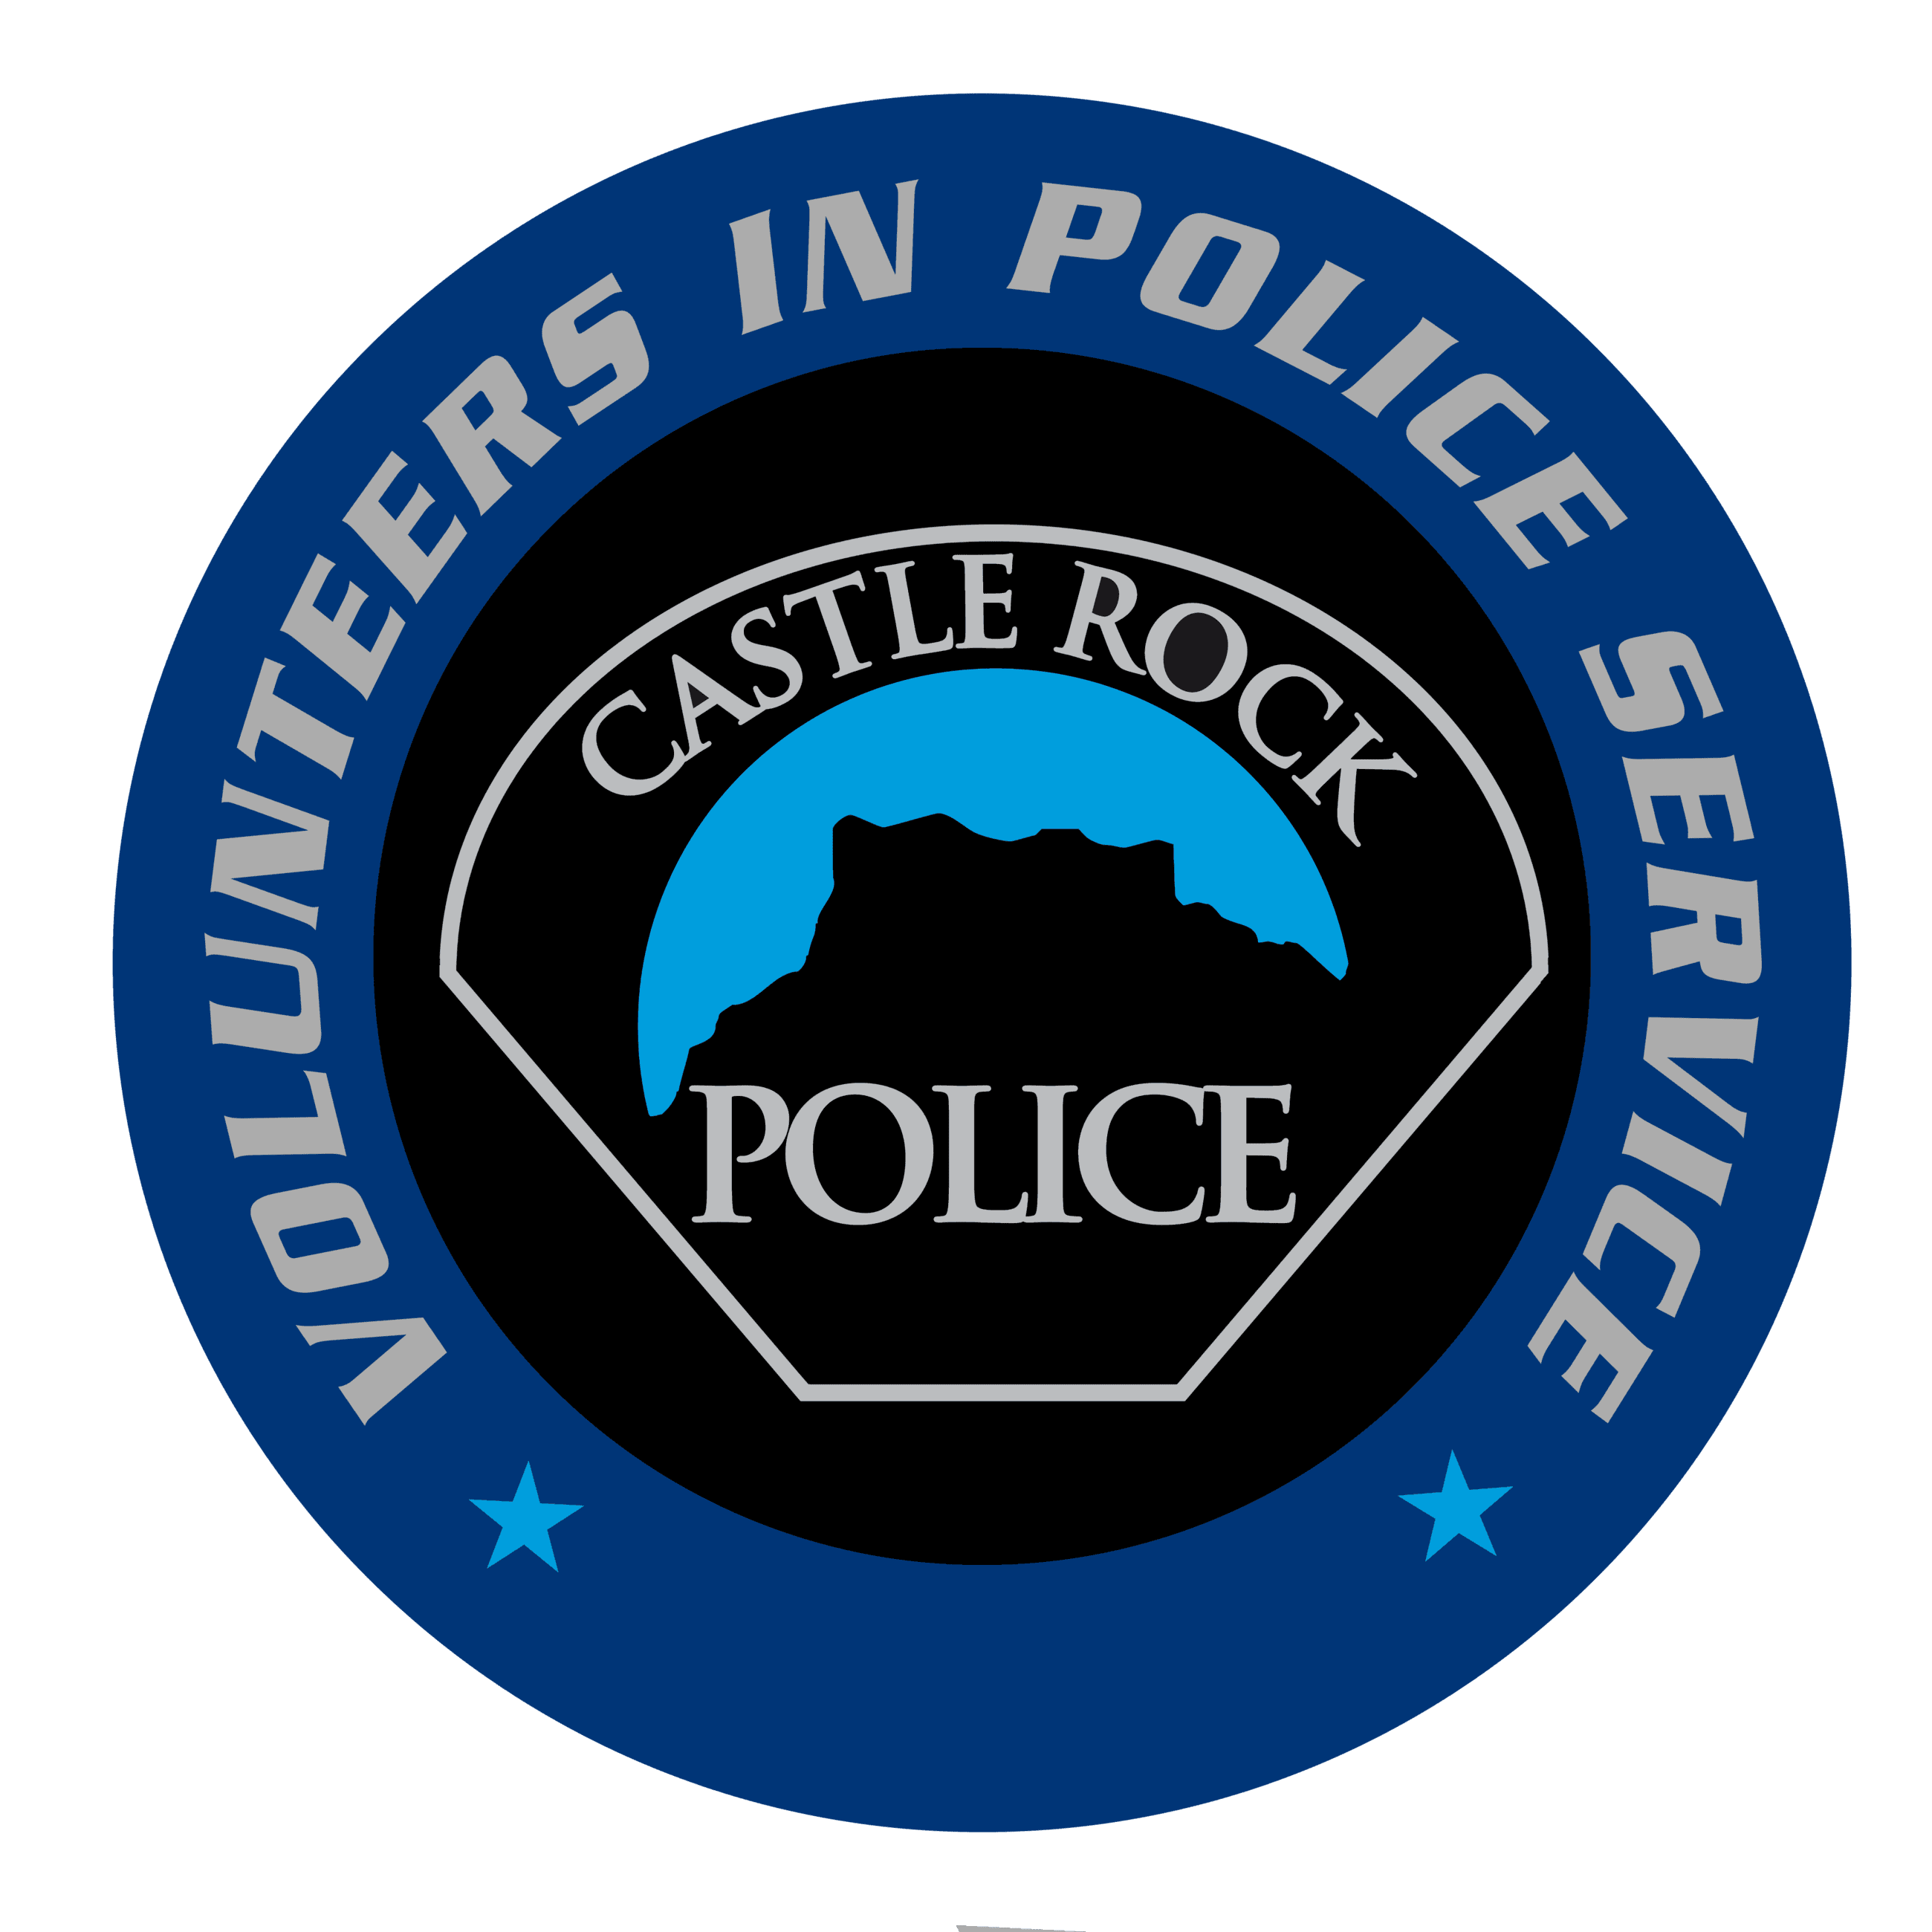 Castle Rock Police Patch